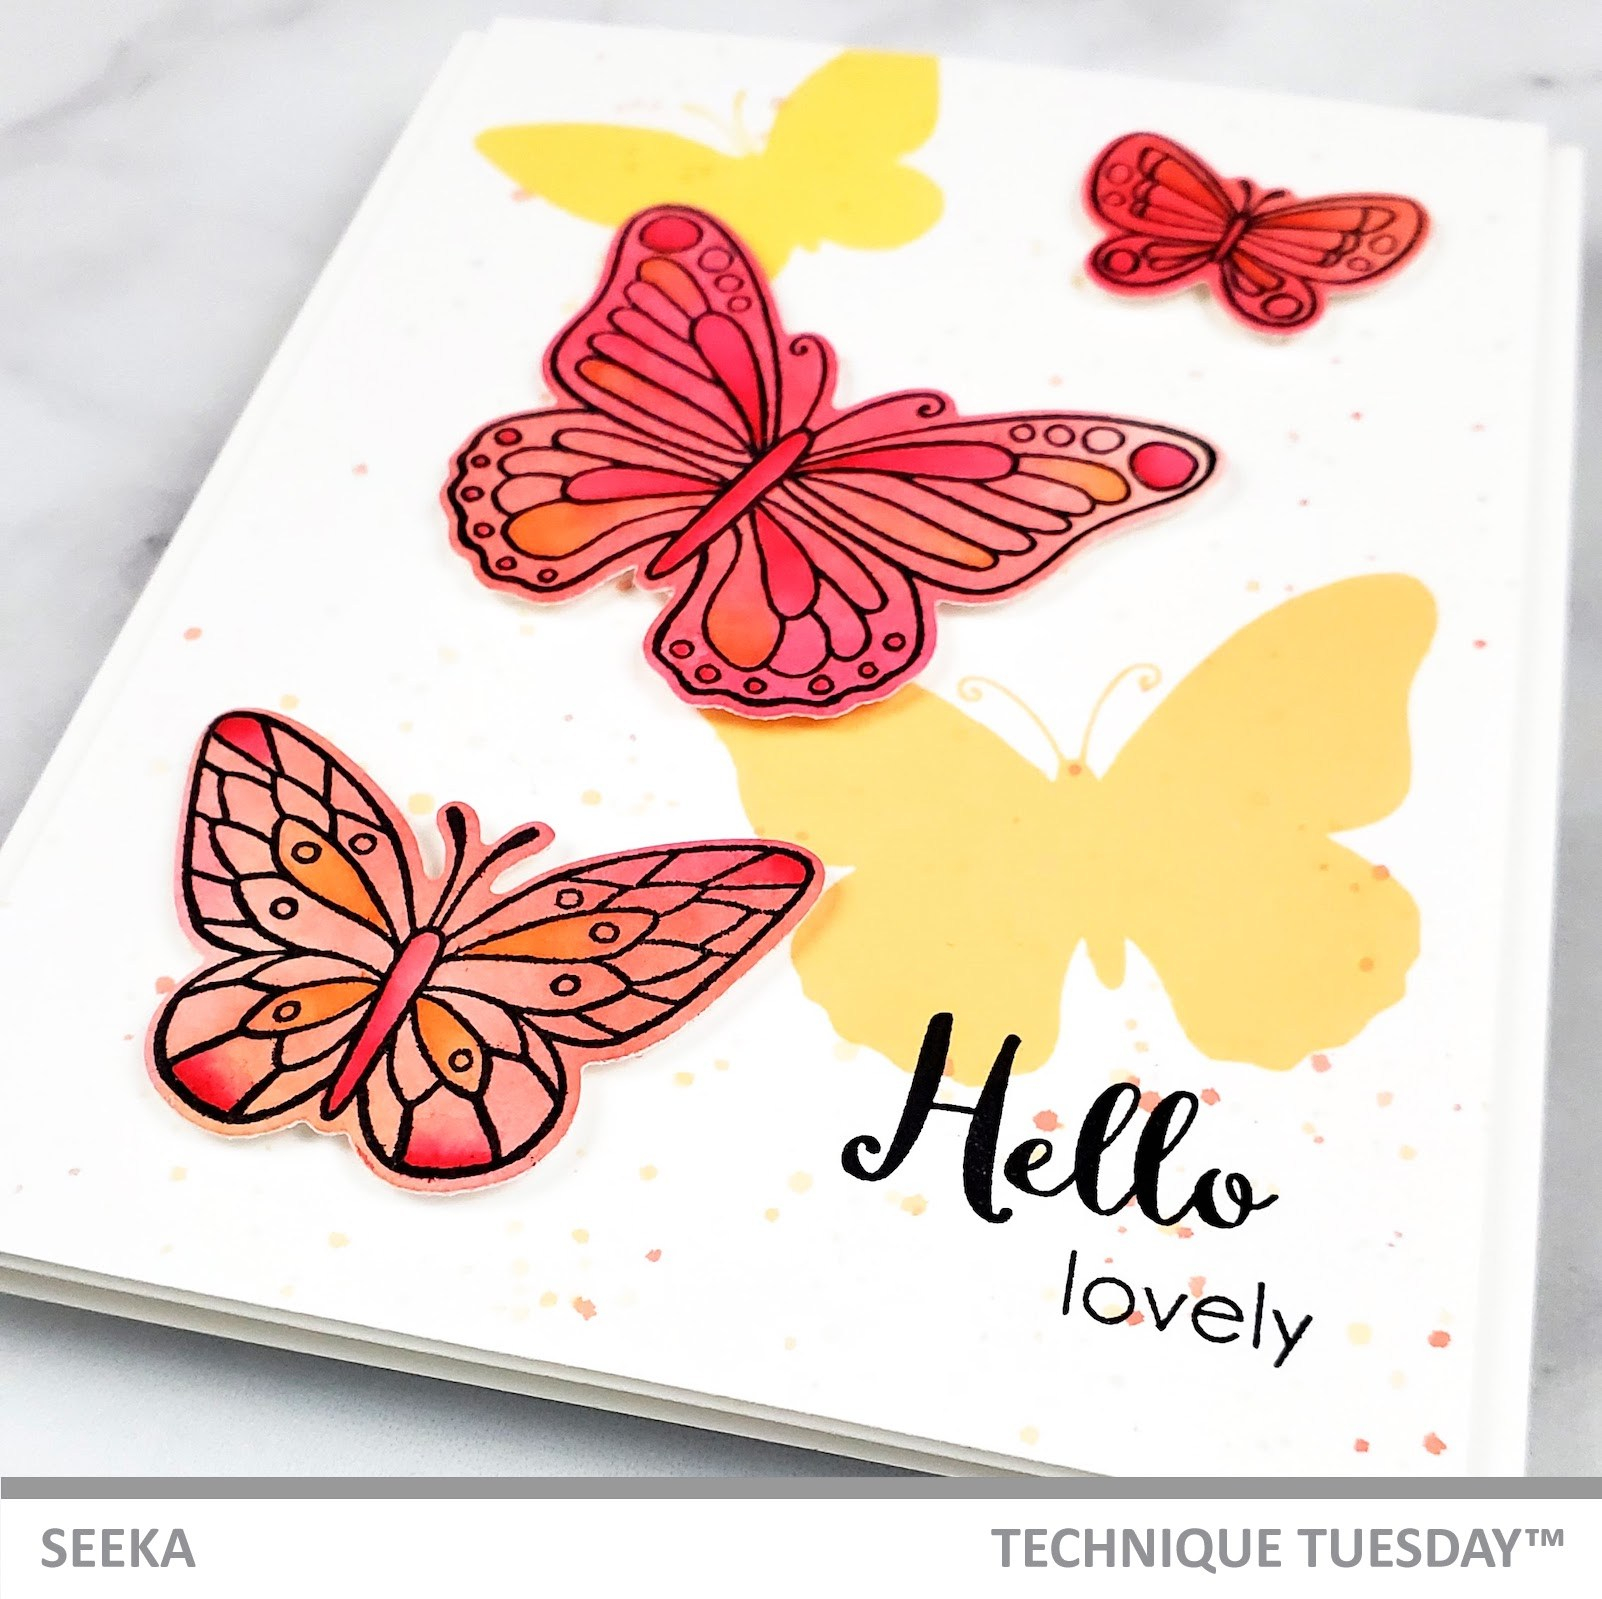 Seeka - Beautiful Butterflies - Friendly February 2